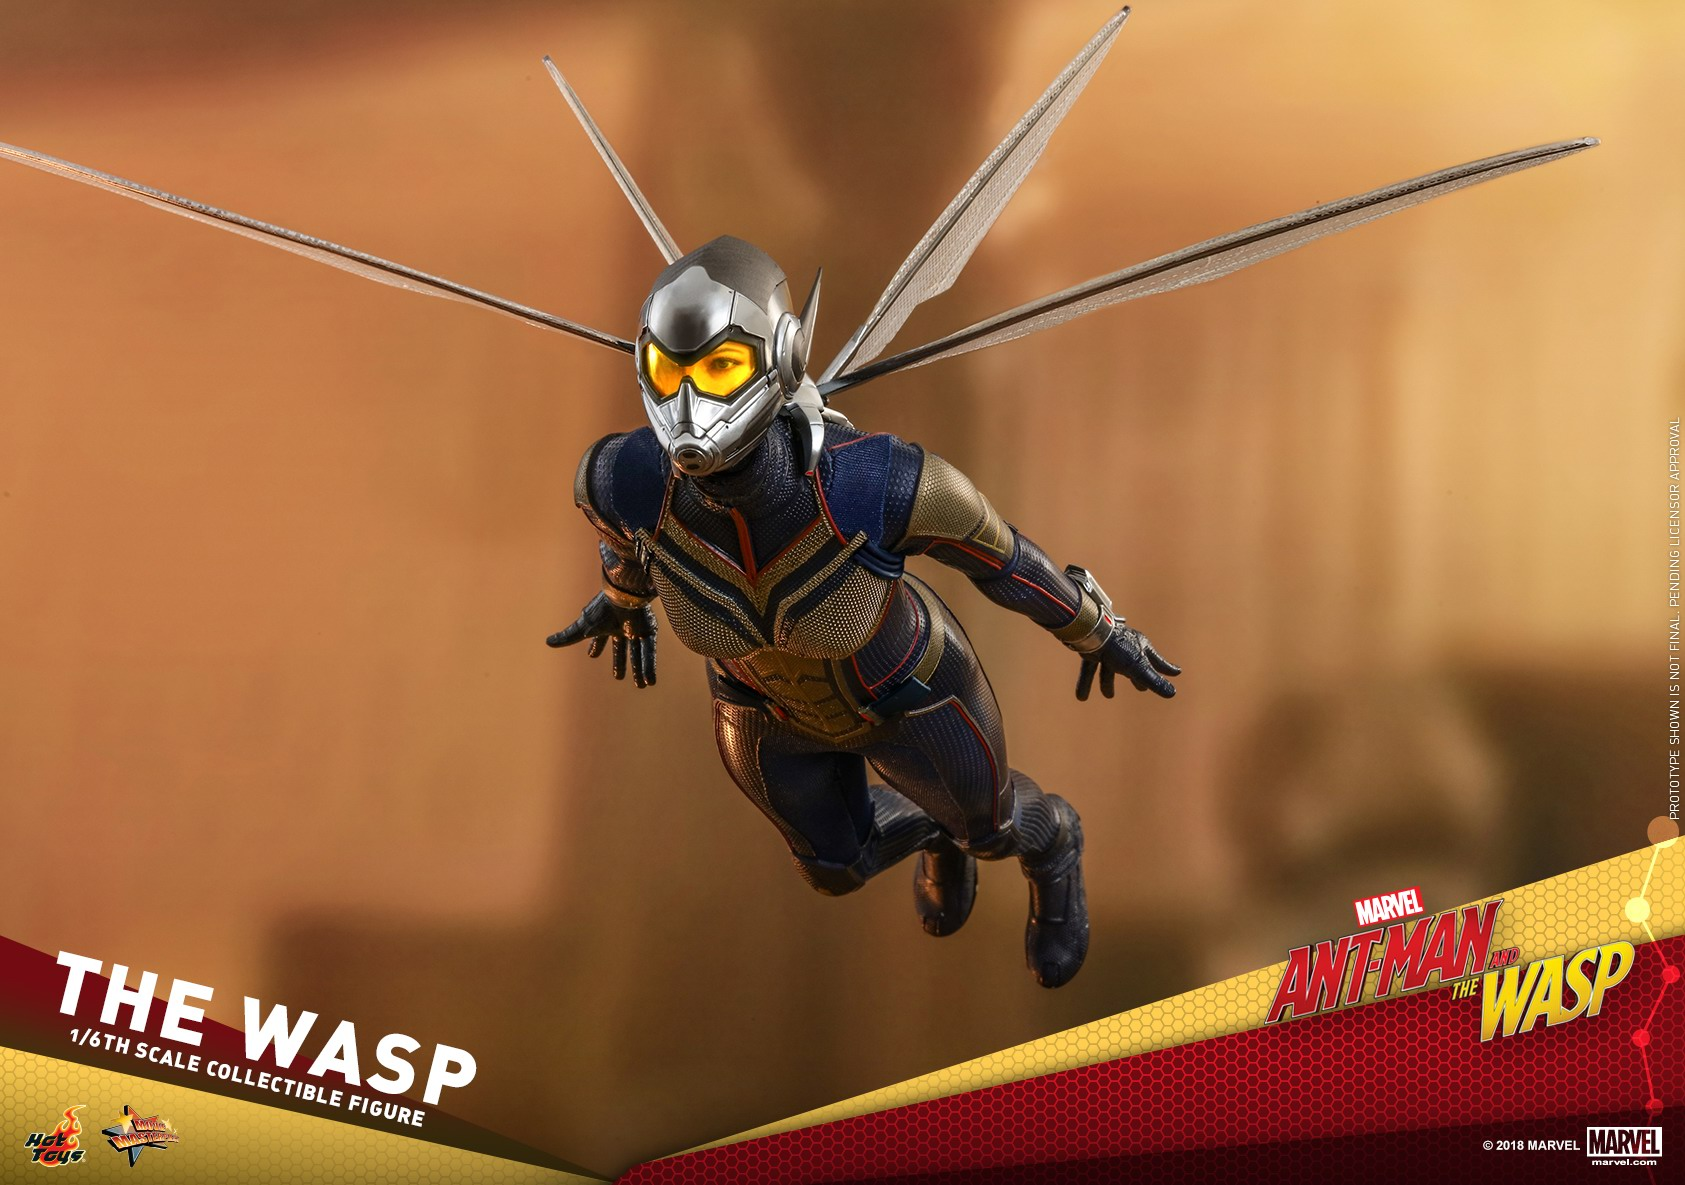 Hot-Toys-Ant-Man-and-The-Wasp-The-Wasp-Collectible-Figure_PR10.jpg